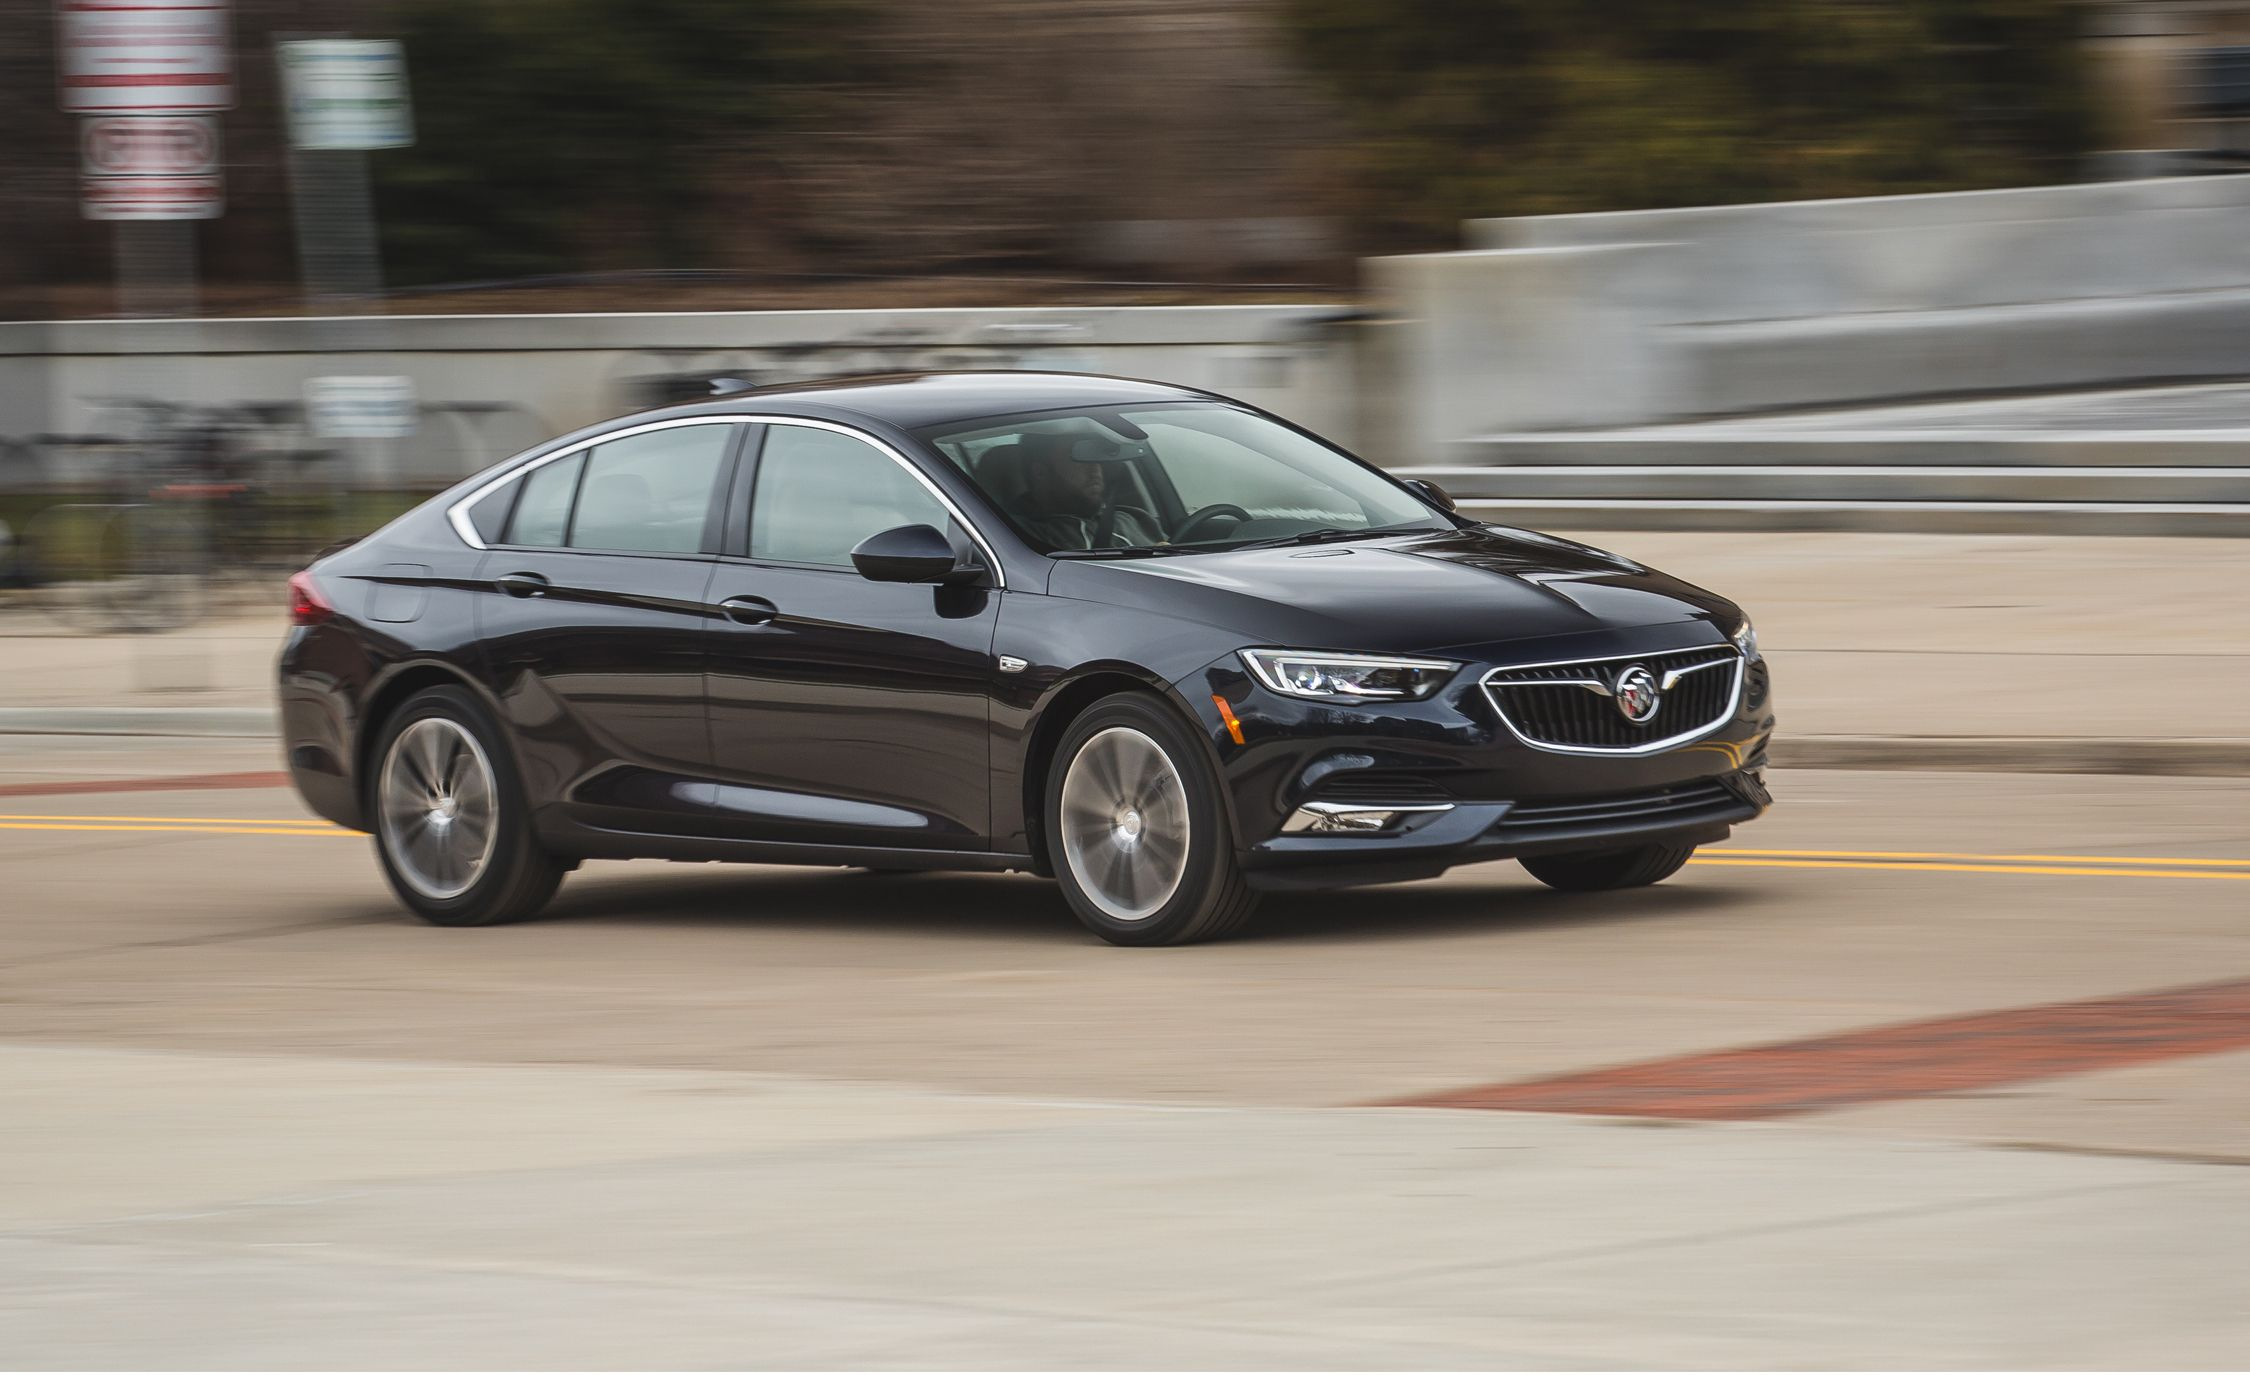 2018 Buick Regal Sportback Fwd Test | Review | Car And Driver 2021 Buick Regal Mpg, Engine, Owners Manual